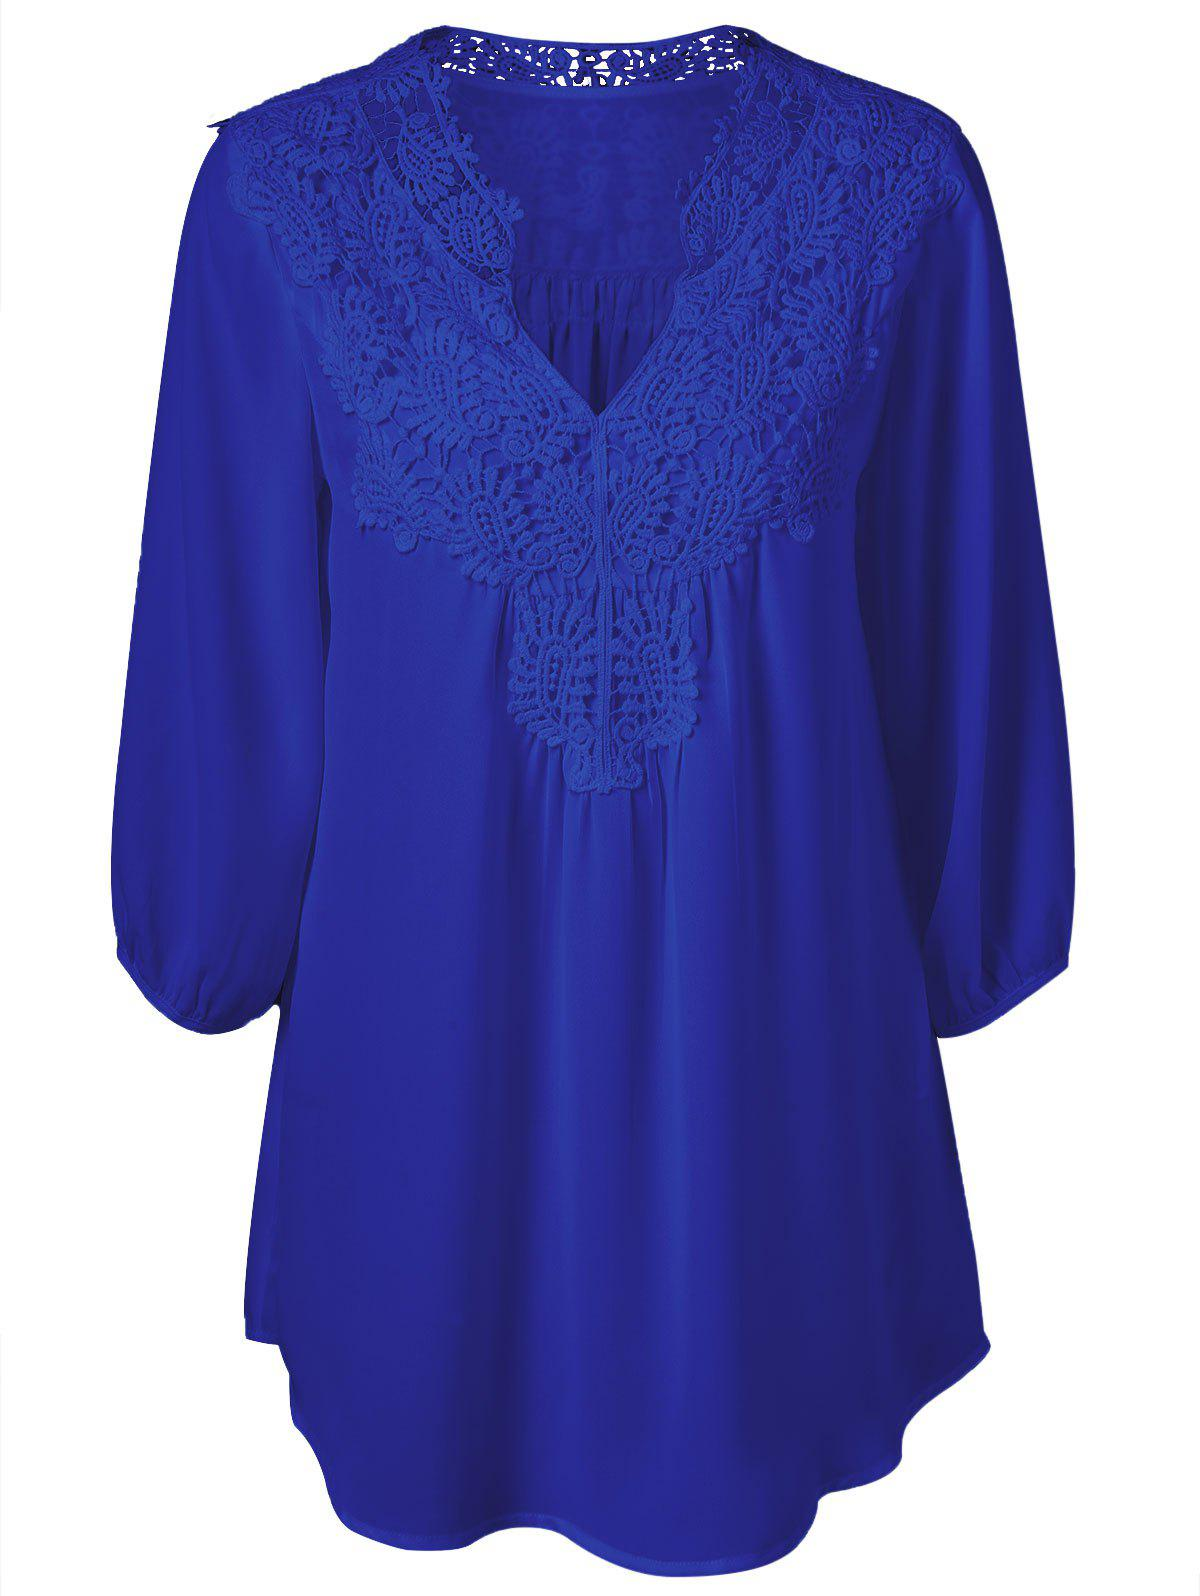 Plus Size Sweet Crochet Spliced Tunic BlouseWOMEN<br><br>Size: 2XL; Color: SAPPHIRE BLUE; Material: Polyester; Shirt Length: Long; Sleeve Length: Three Quarter; Collar: V-Neck; Style: Casual; Season: Summer; Pattern Type: Patchwork; Weight: 0.2310kg; Package Contents: 1 x Blouse;